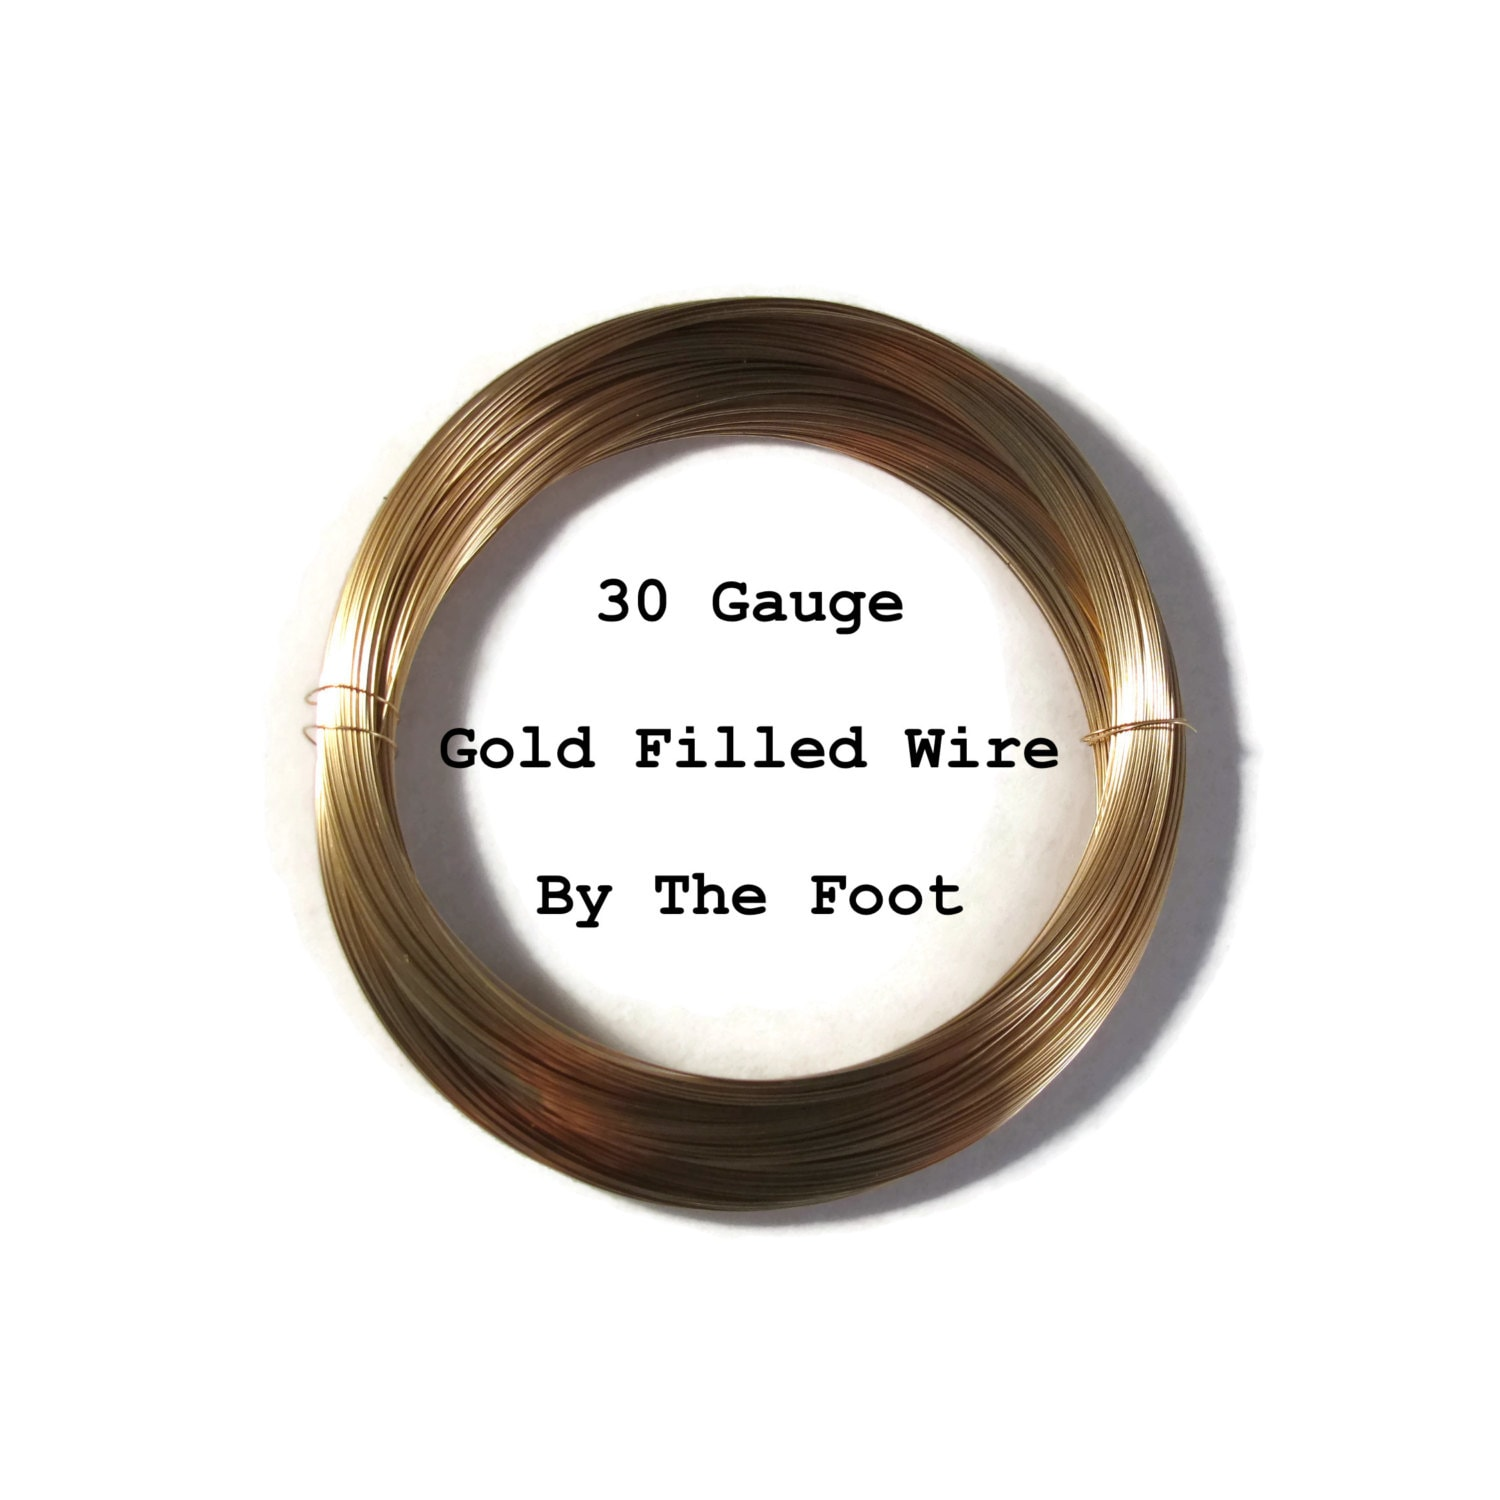 30 Gauge Wire, 14/20 Gold Filled Wire, Thin Wire By The Foot, Round ...